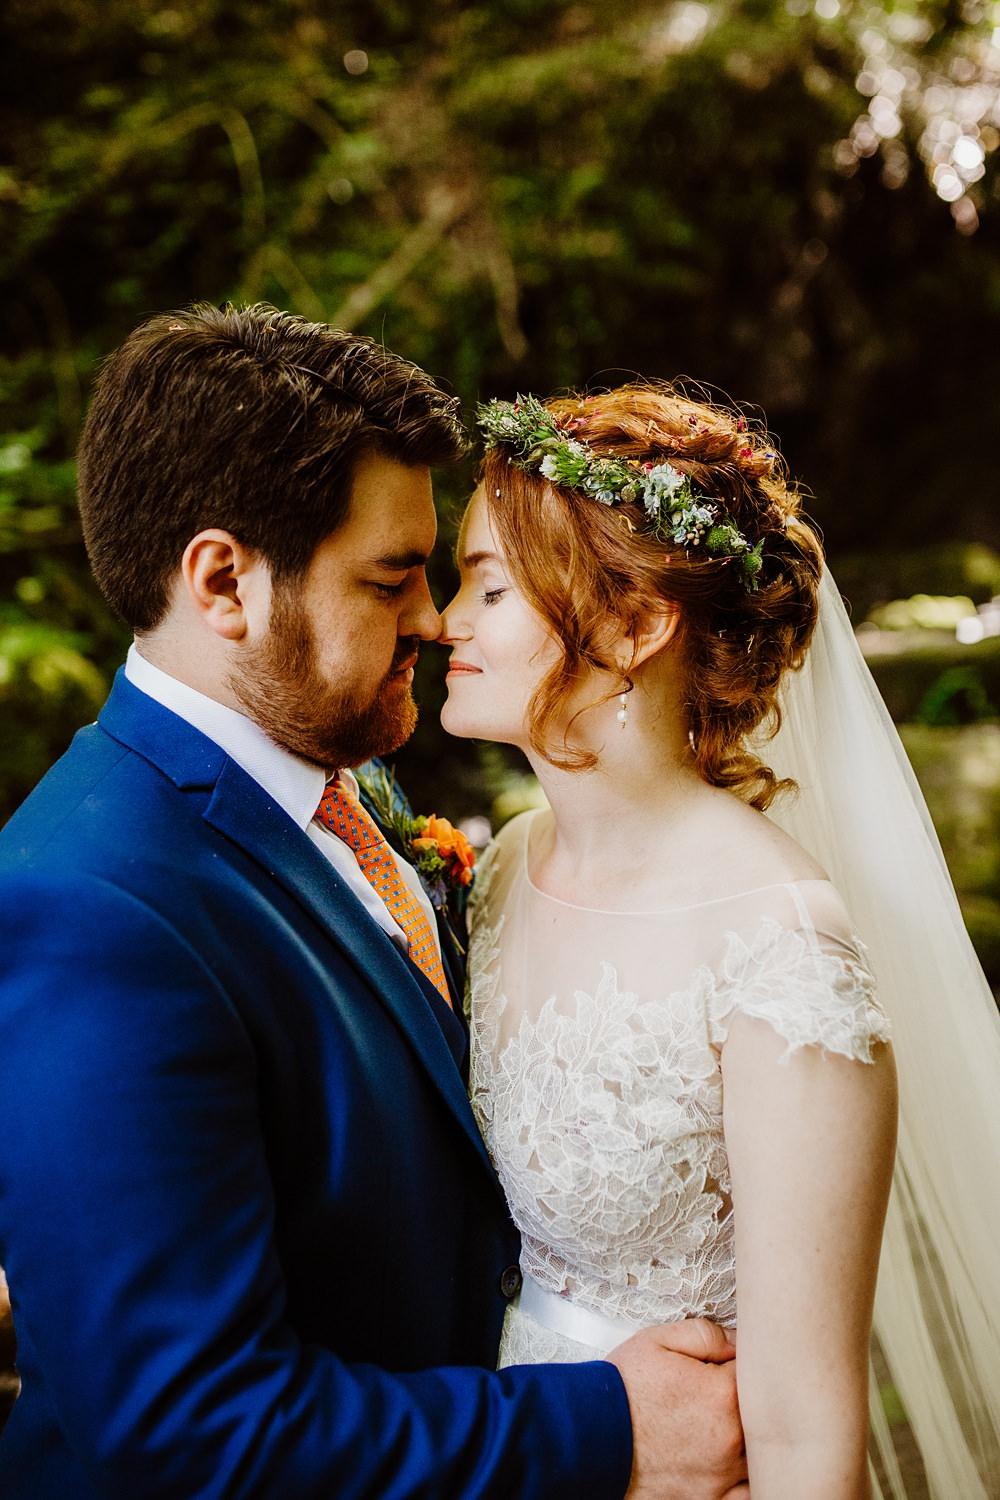 Flower Crown Bride Bridal Canonteign Falls Wedding Holly Collings Photography